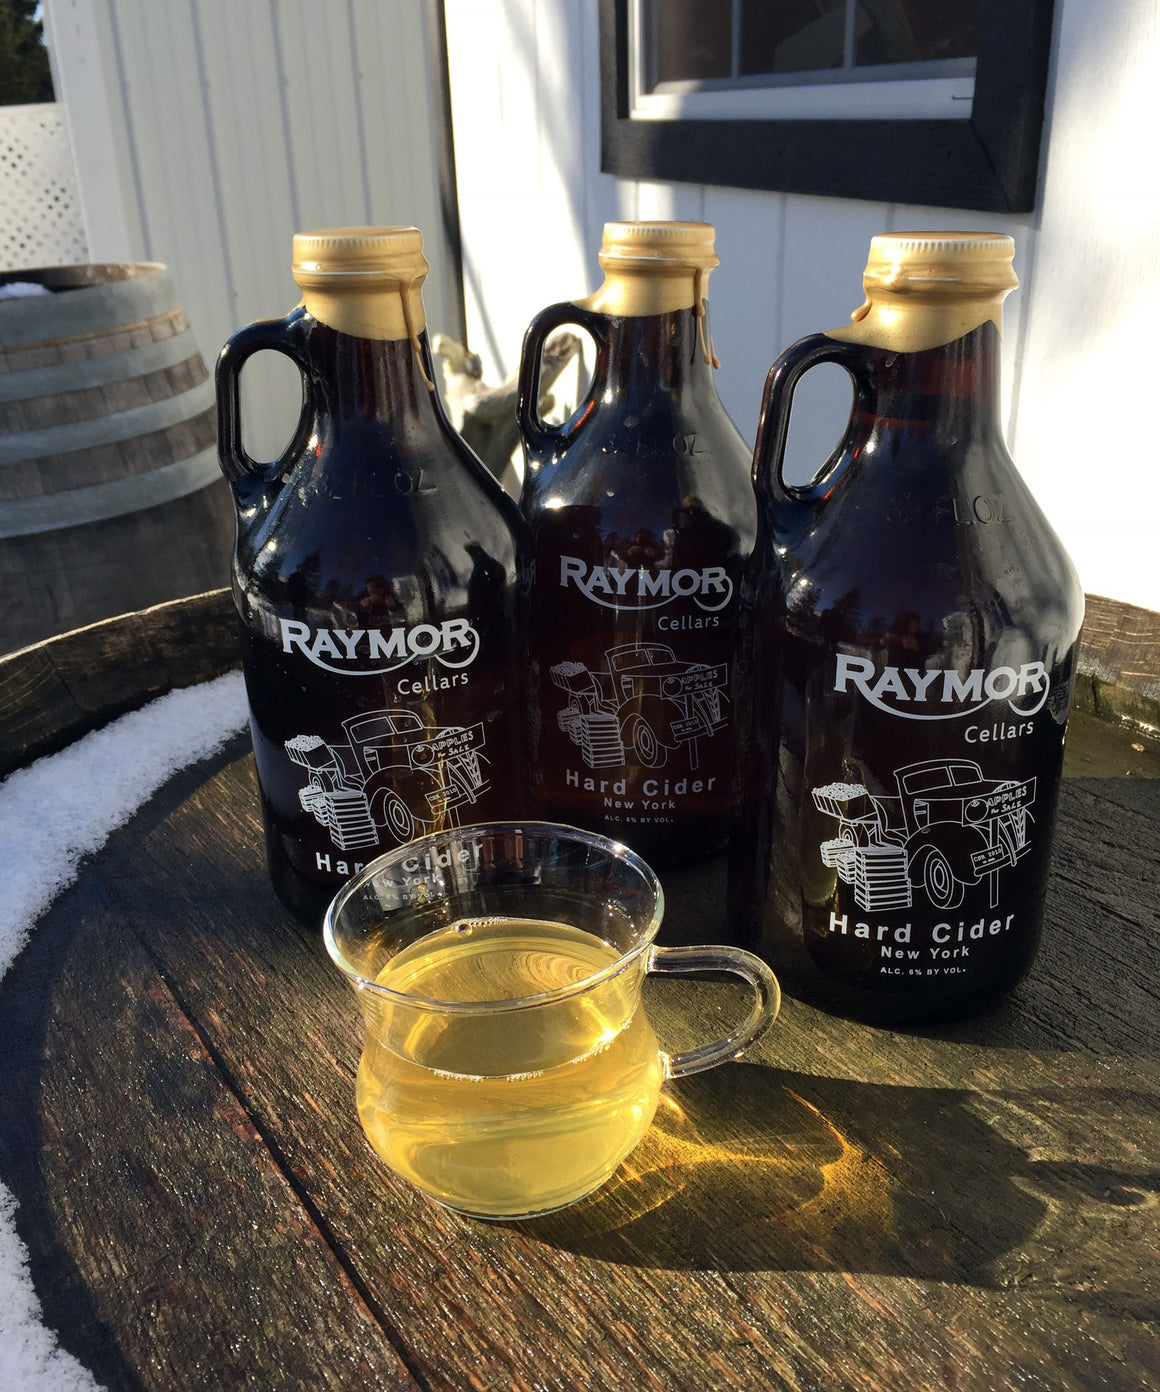 Our Sugar Maple Apple Hard Cider is a blend of eight different apple varietals with the addition of New York State Sugar Maple Syrup. This cider is sweet with a definite maple flavor. Tastes like no other!  Percentage of Alcohol: 6%. Price is $15.00.